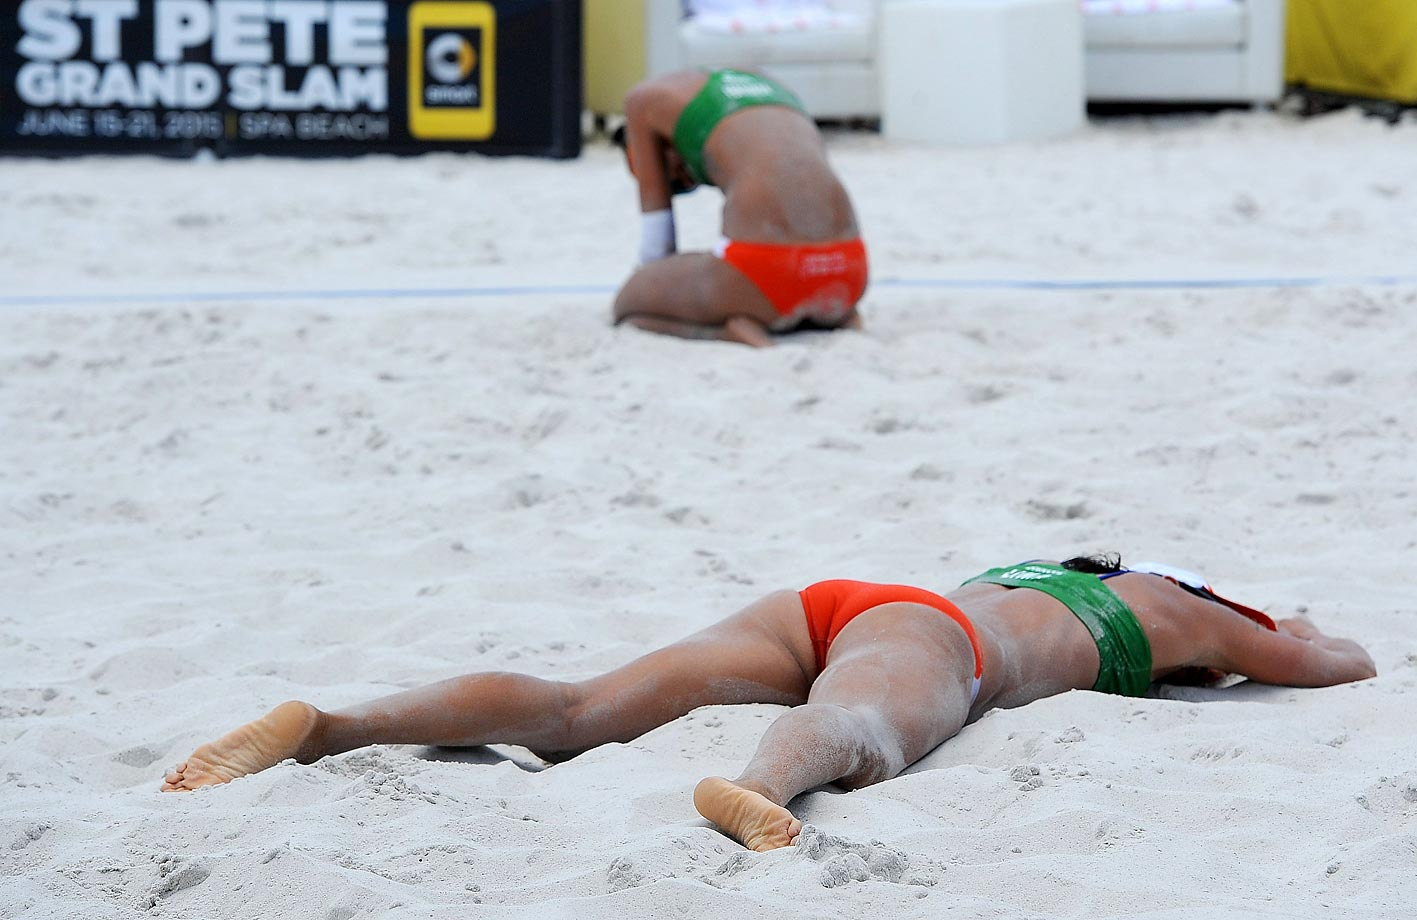 Fernanda Alves Berti and Taiana Lima of Brazil collapse at the final point during their bronze medal game against Karla Borger and Britta Buthe of Germany in the FIVB Beach Volleyball World Tour.